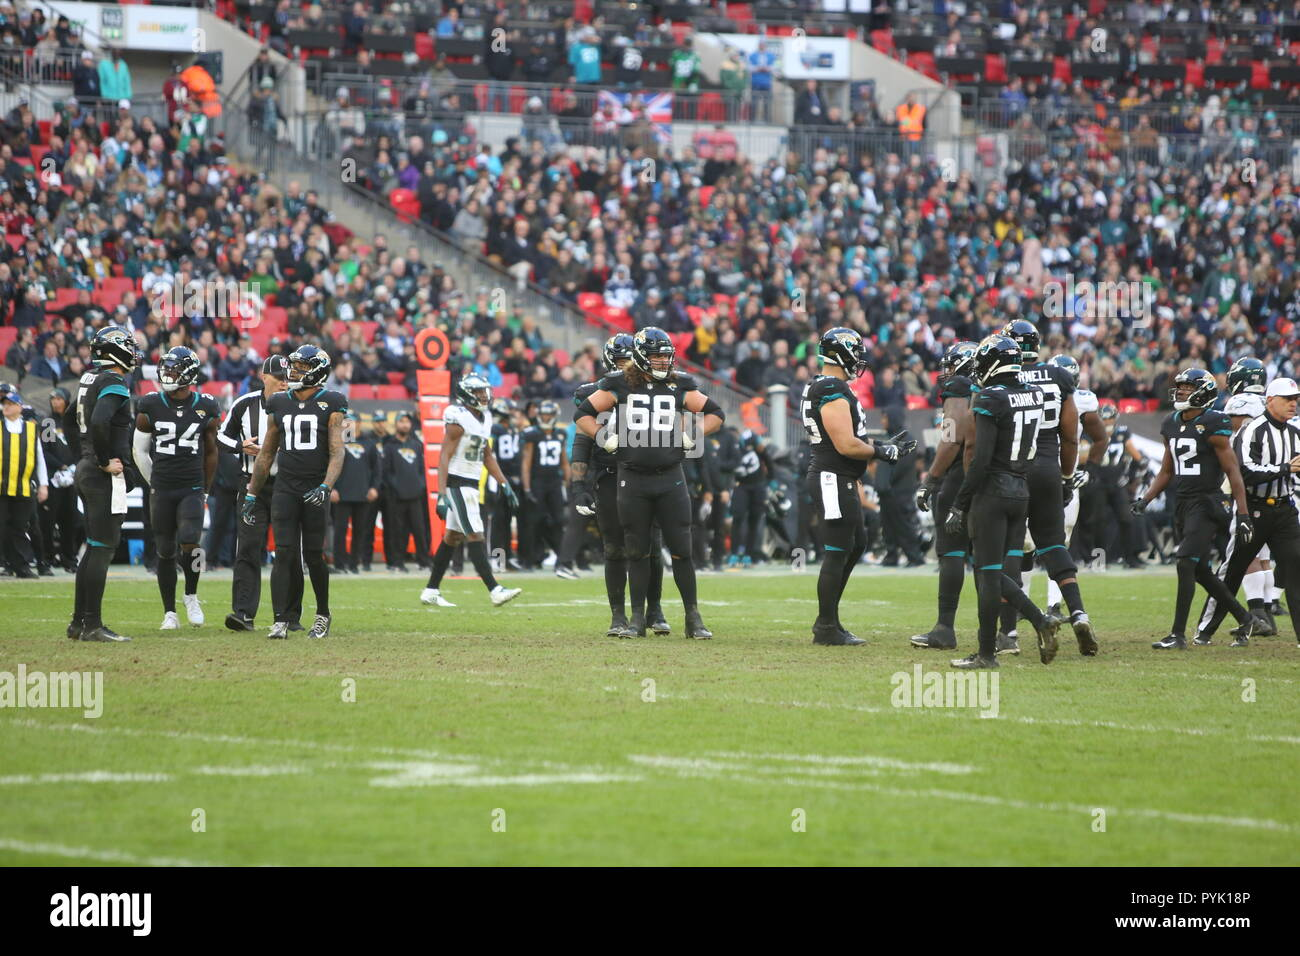 London, UK. 28 October 2018.    at the Eagles at Jaguars - credit Glamourstock Credit: glamourstock/Alamy Live News - Stock Image